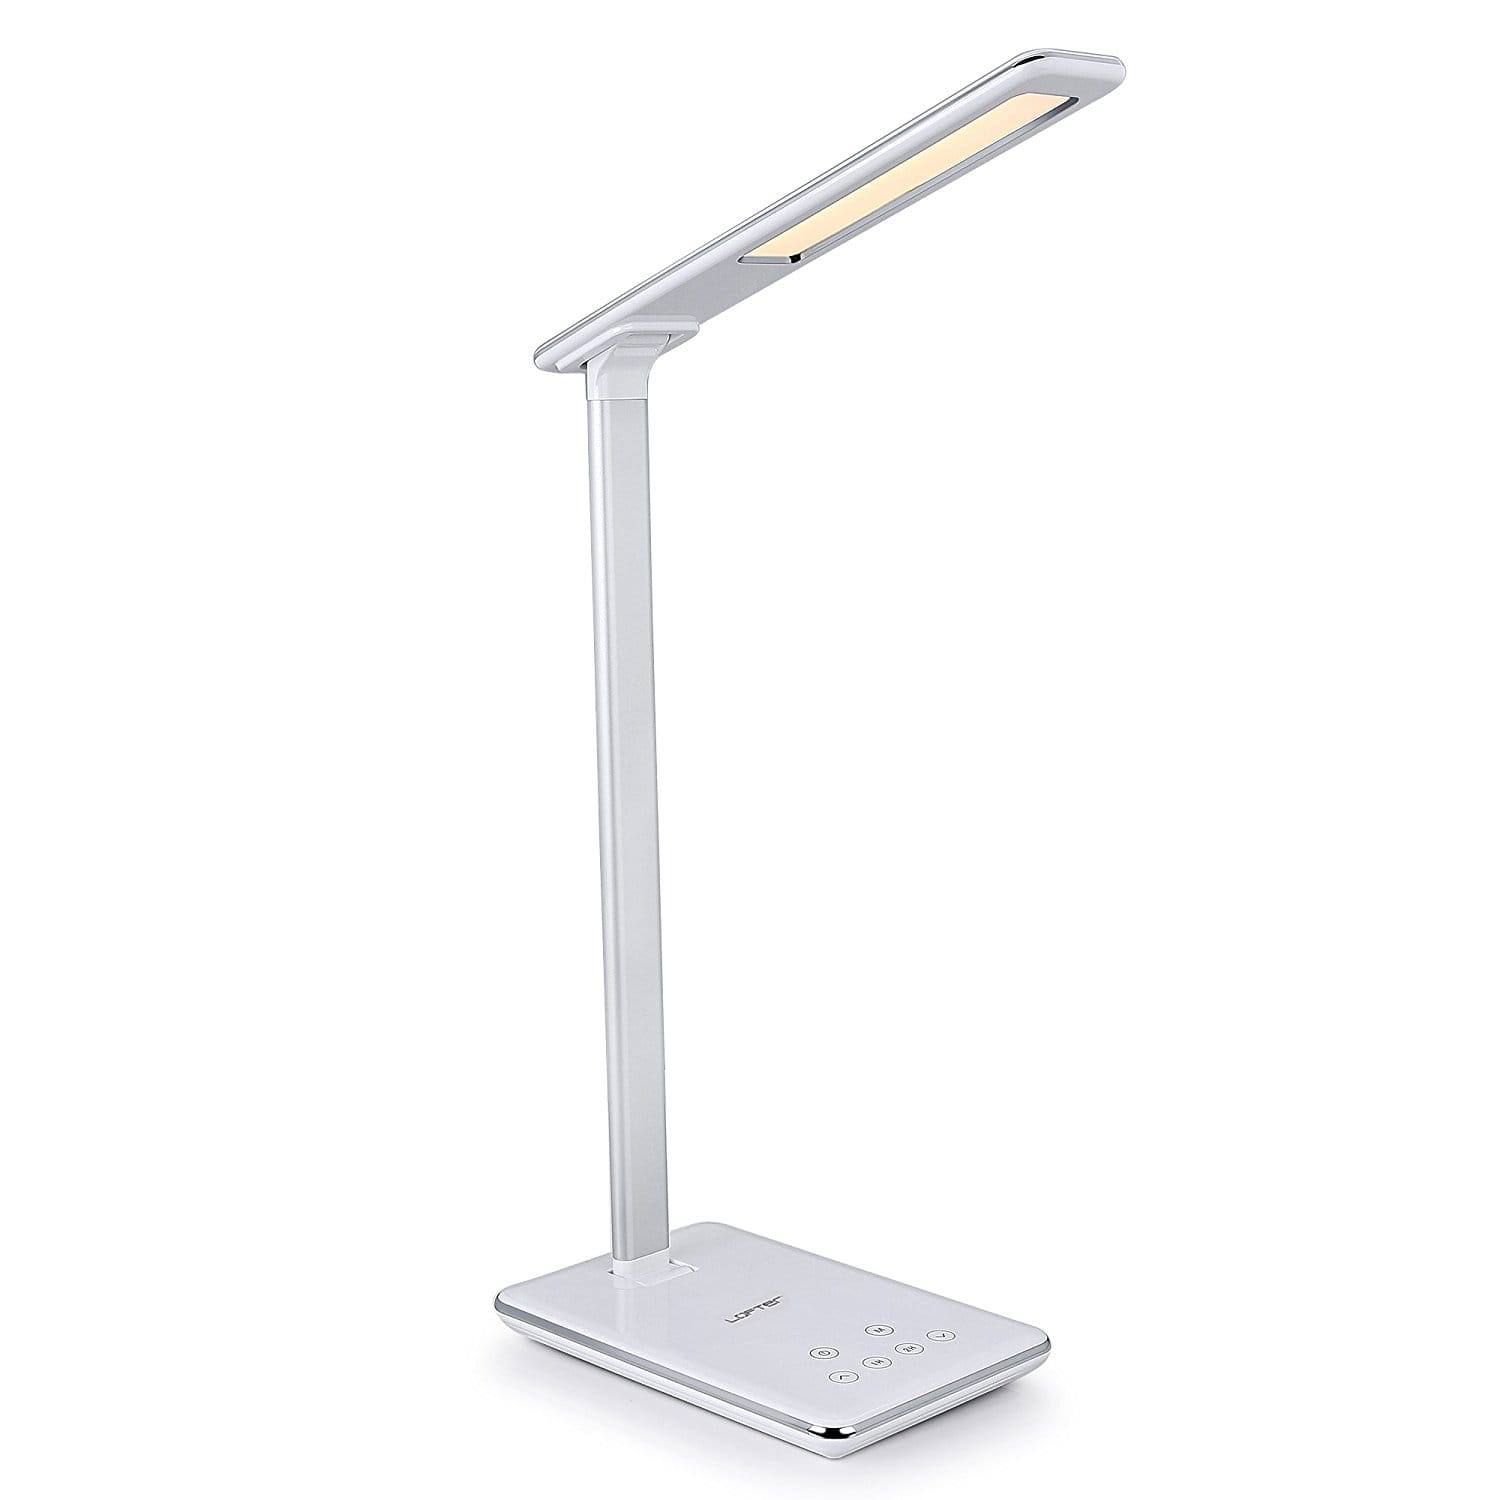 Dimmable Touch Control Panel LED Desk Lamp Foldable Table Lamps USB Charging $16.79 AC FS w/Amazon Prime